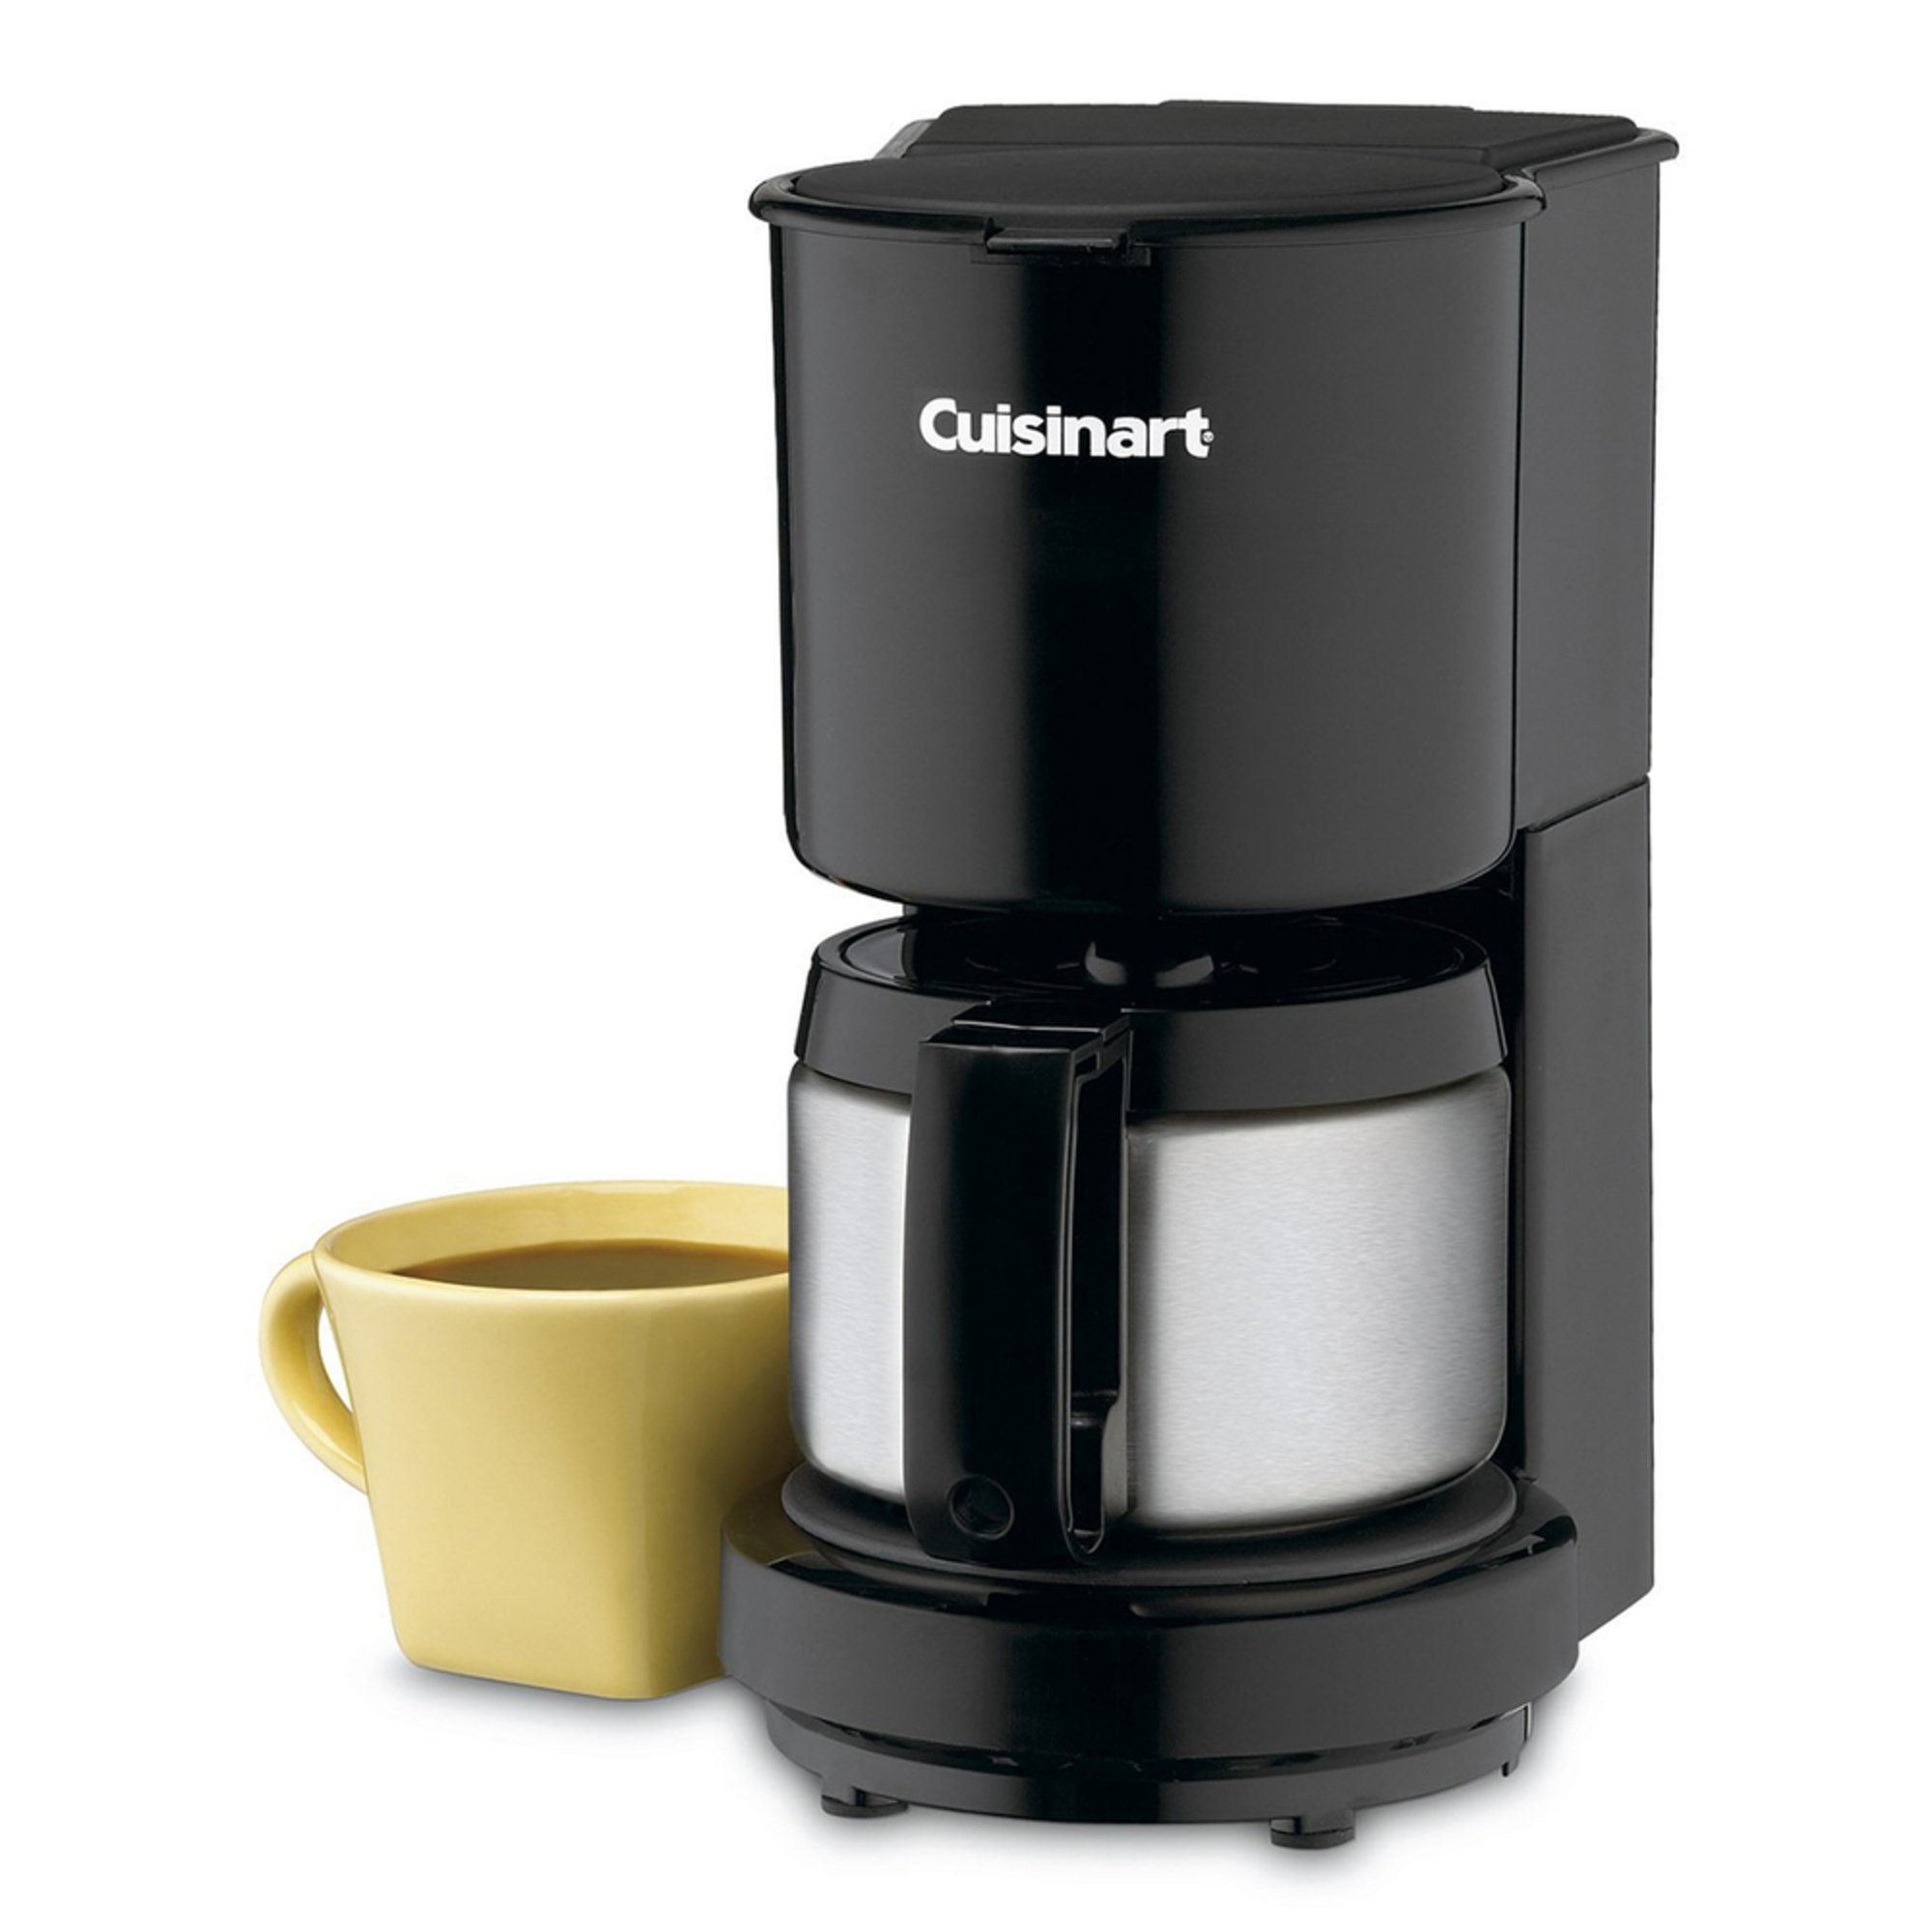 Cuisinart 4 Cup Coffee Maker W/stainless Steel Carafe (dcc ...